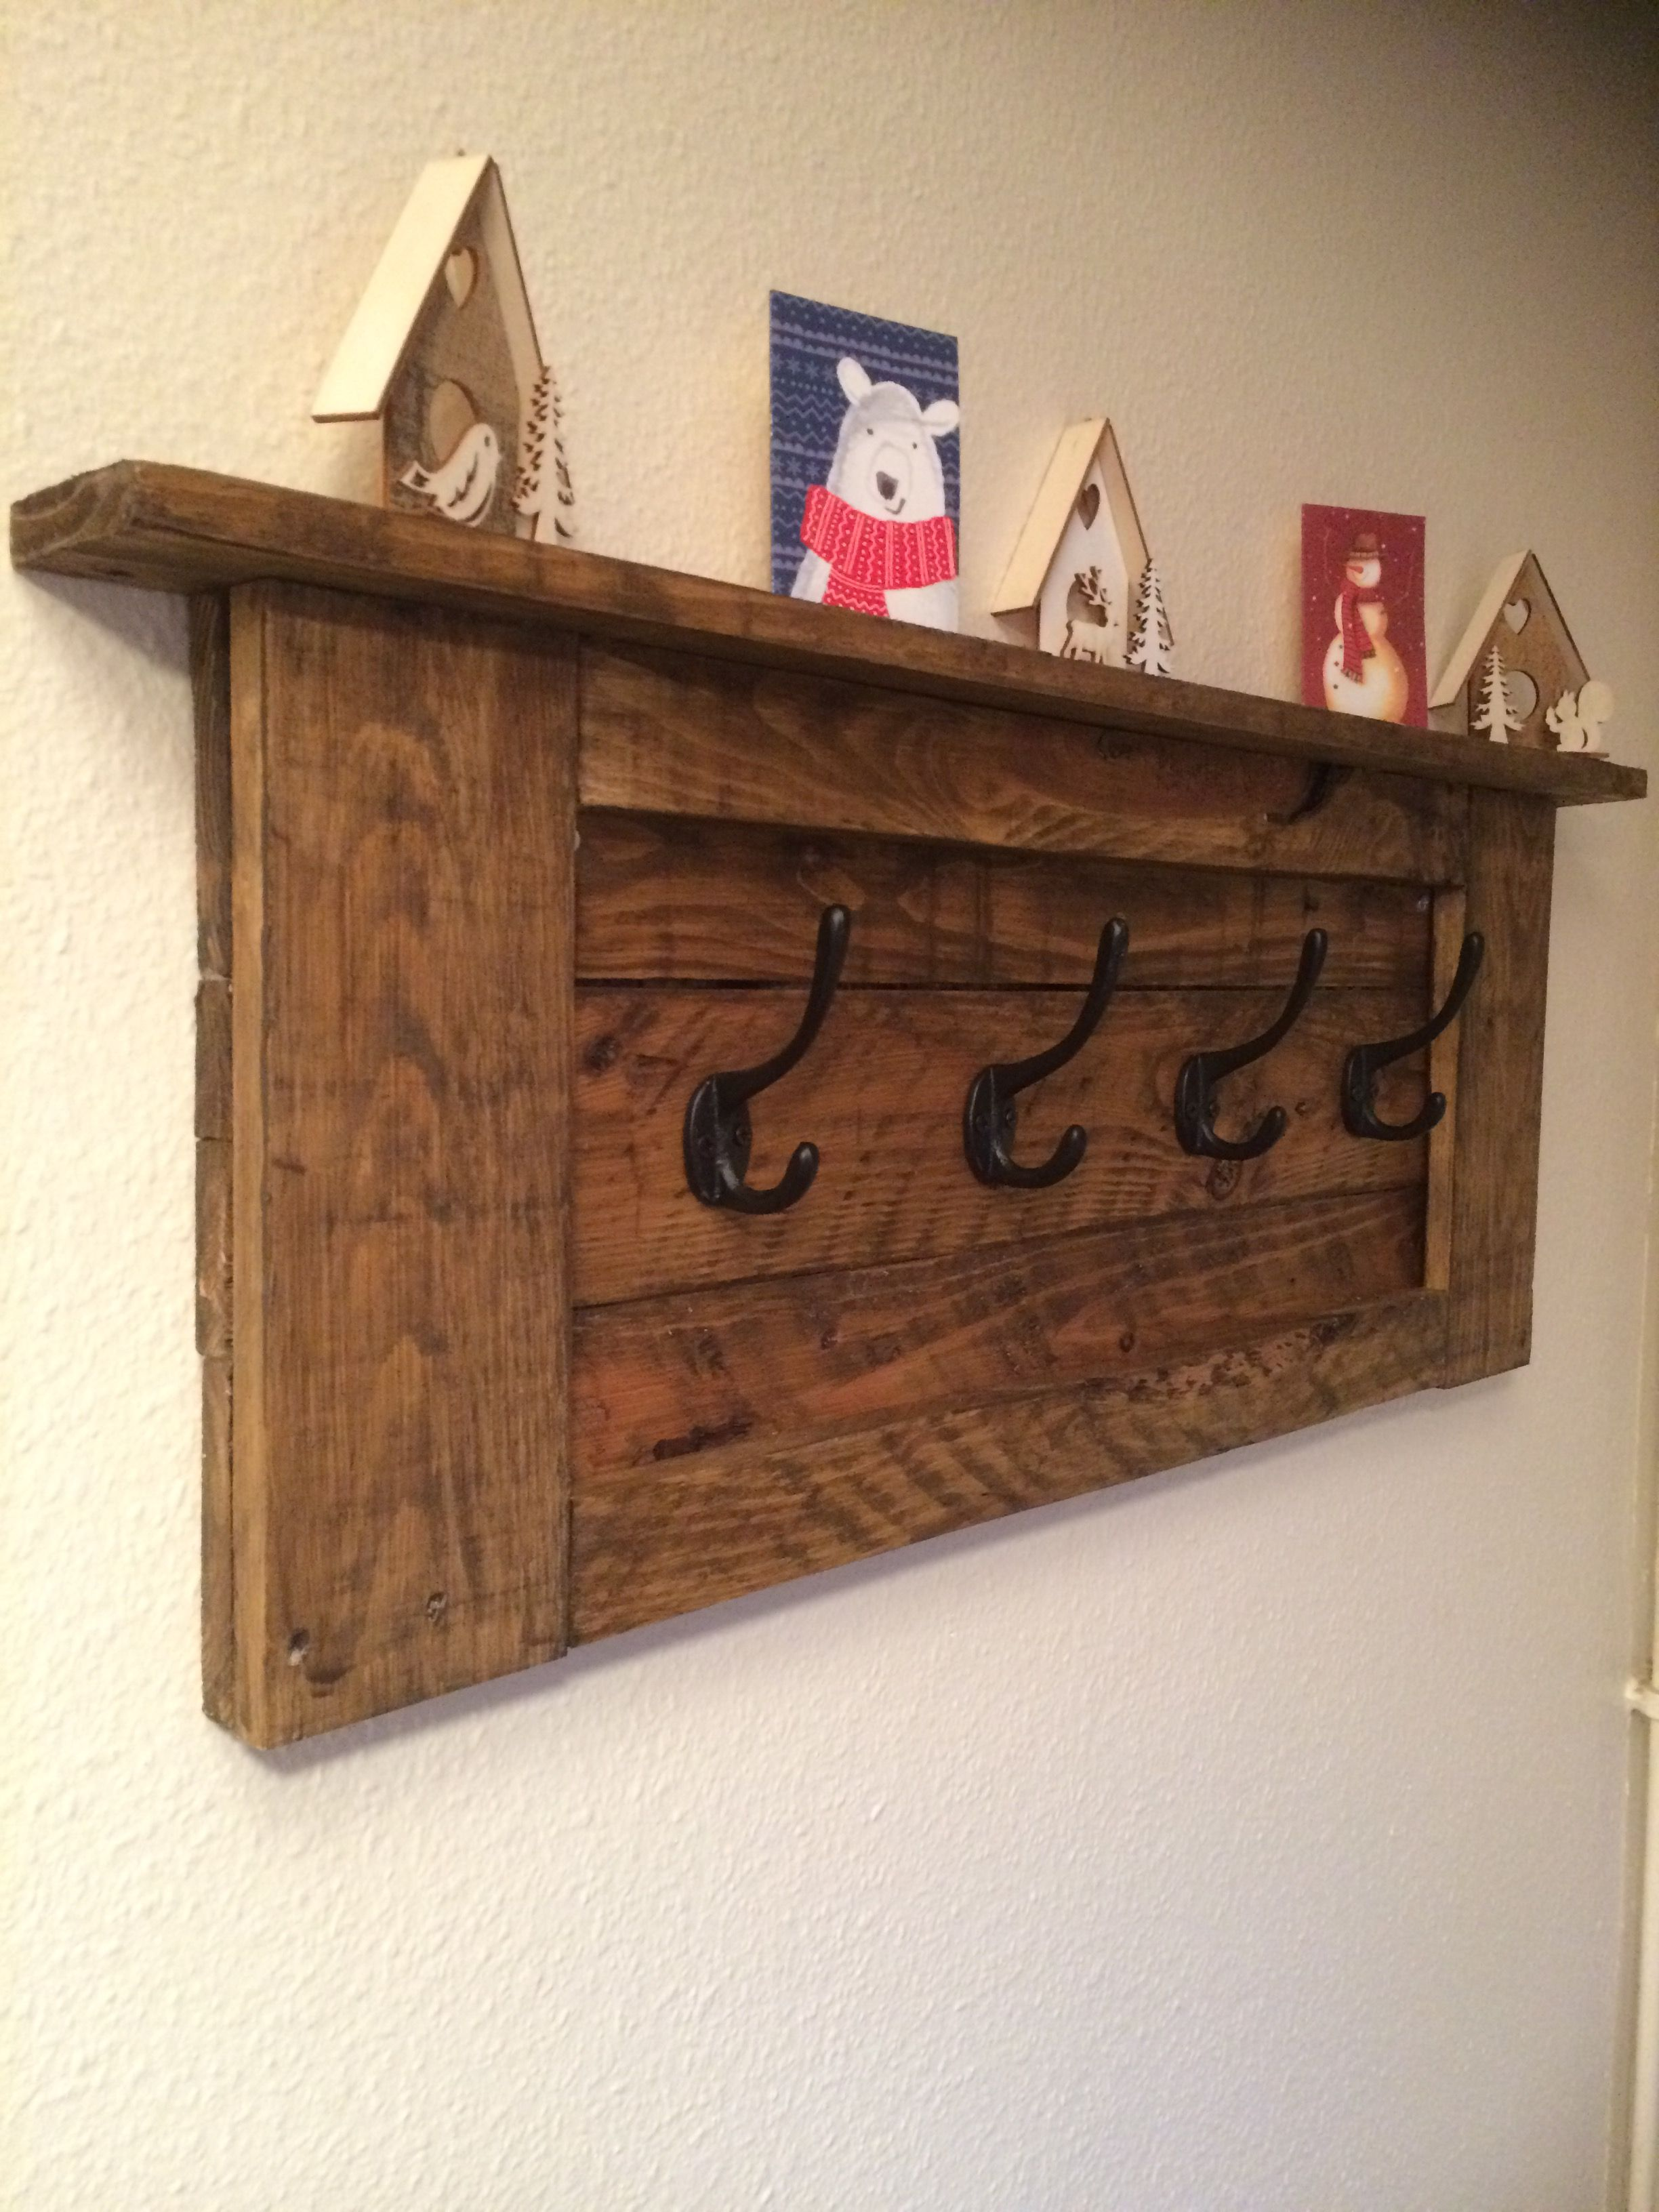 Wooden Hooks Rustic Wooden Coat Rack With Cast Iron Hooks Upcycled